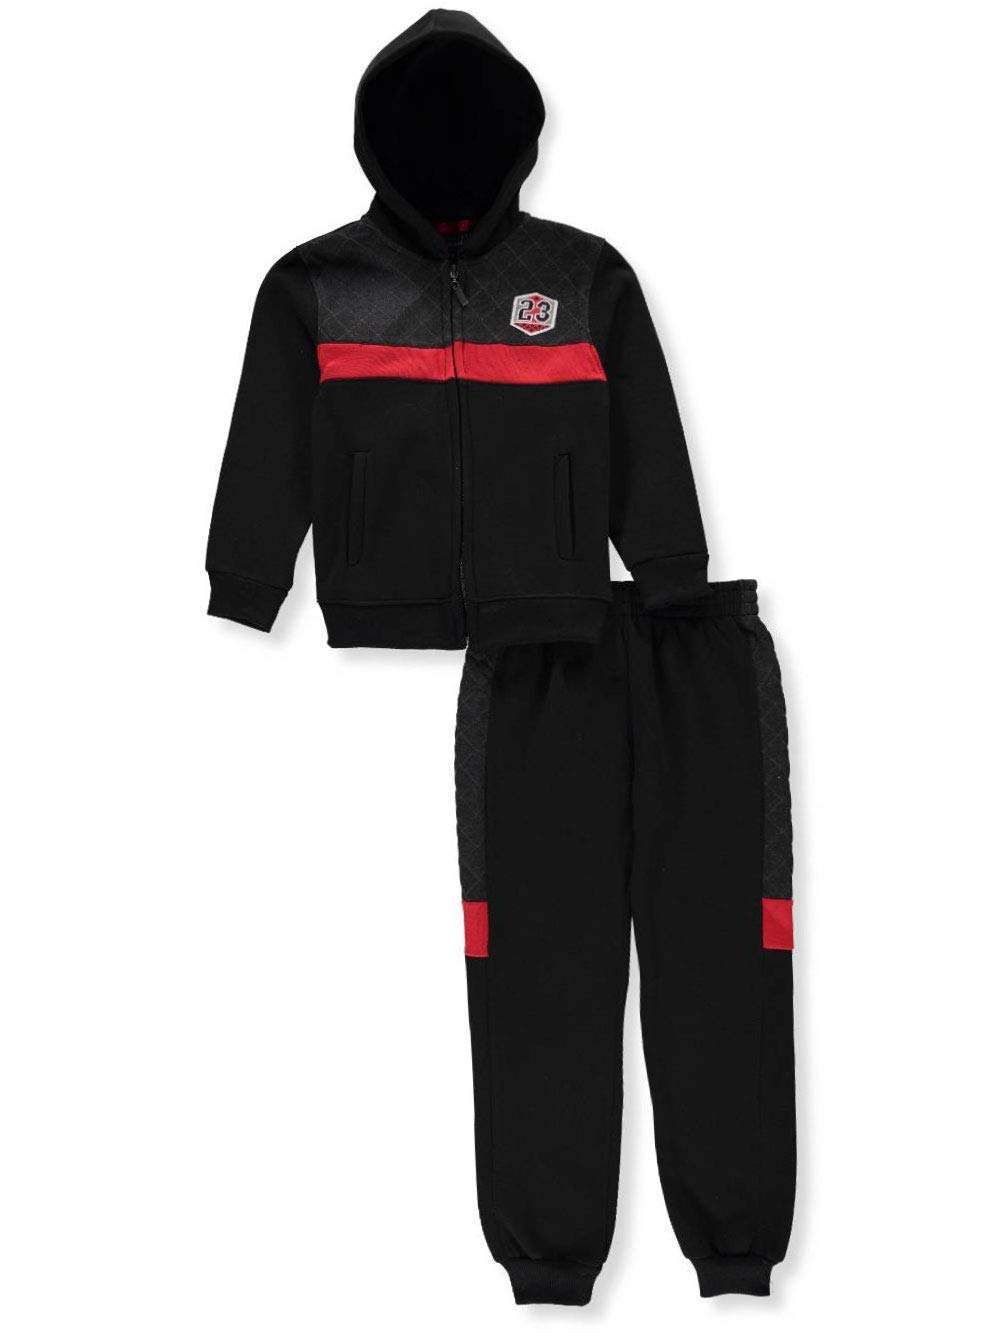 Alura Quad Seven Boys' 2-Piece Sweatsuit Pants Set